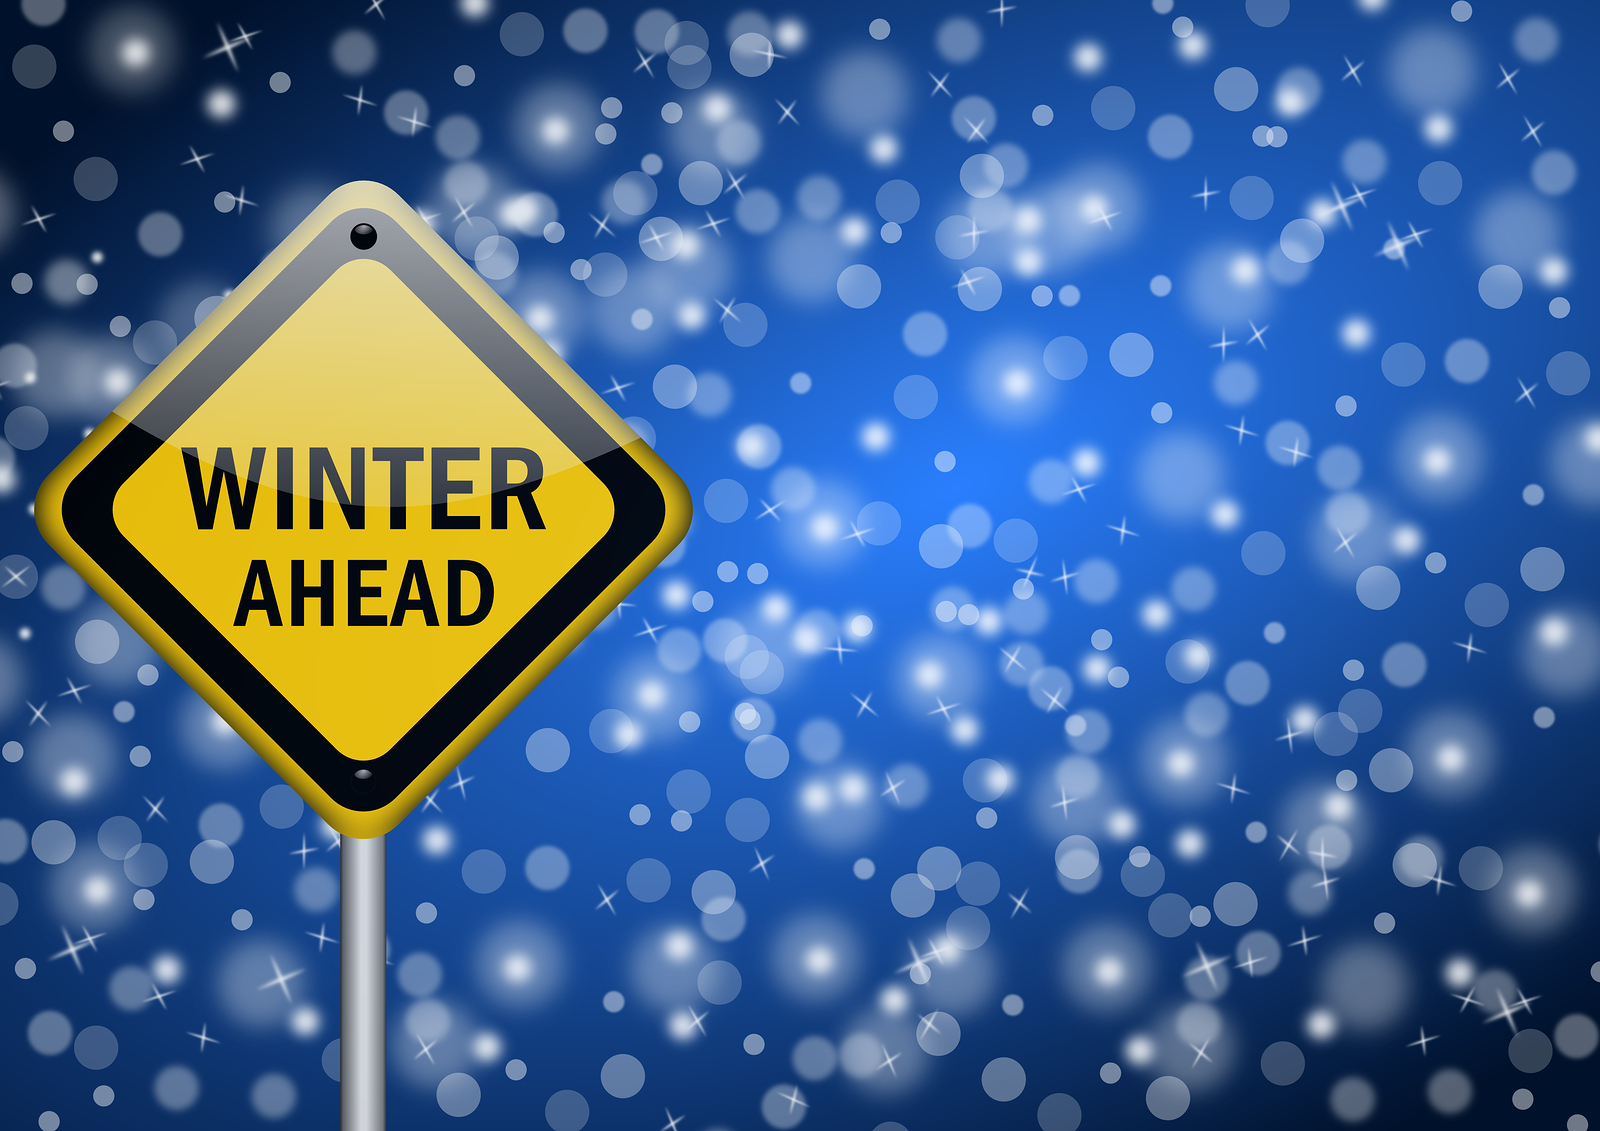 winter ahead graphic